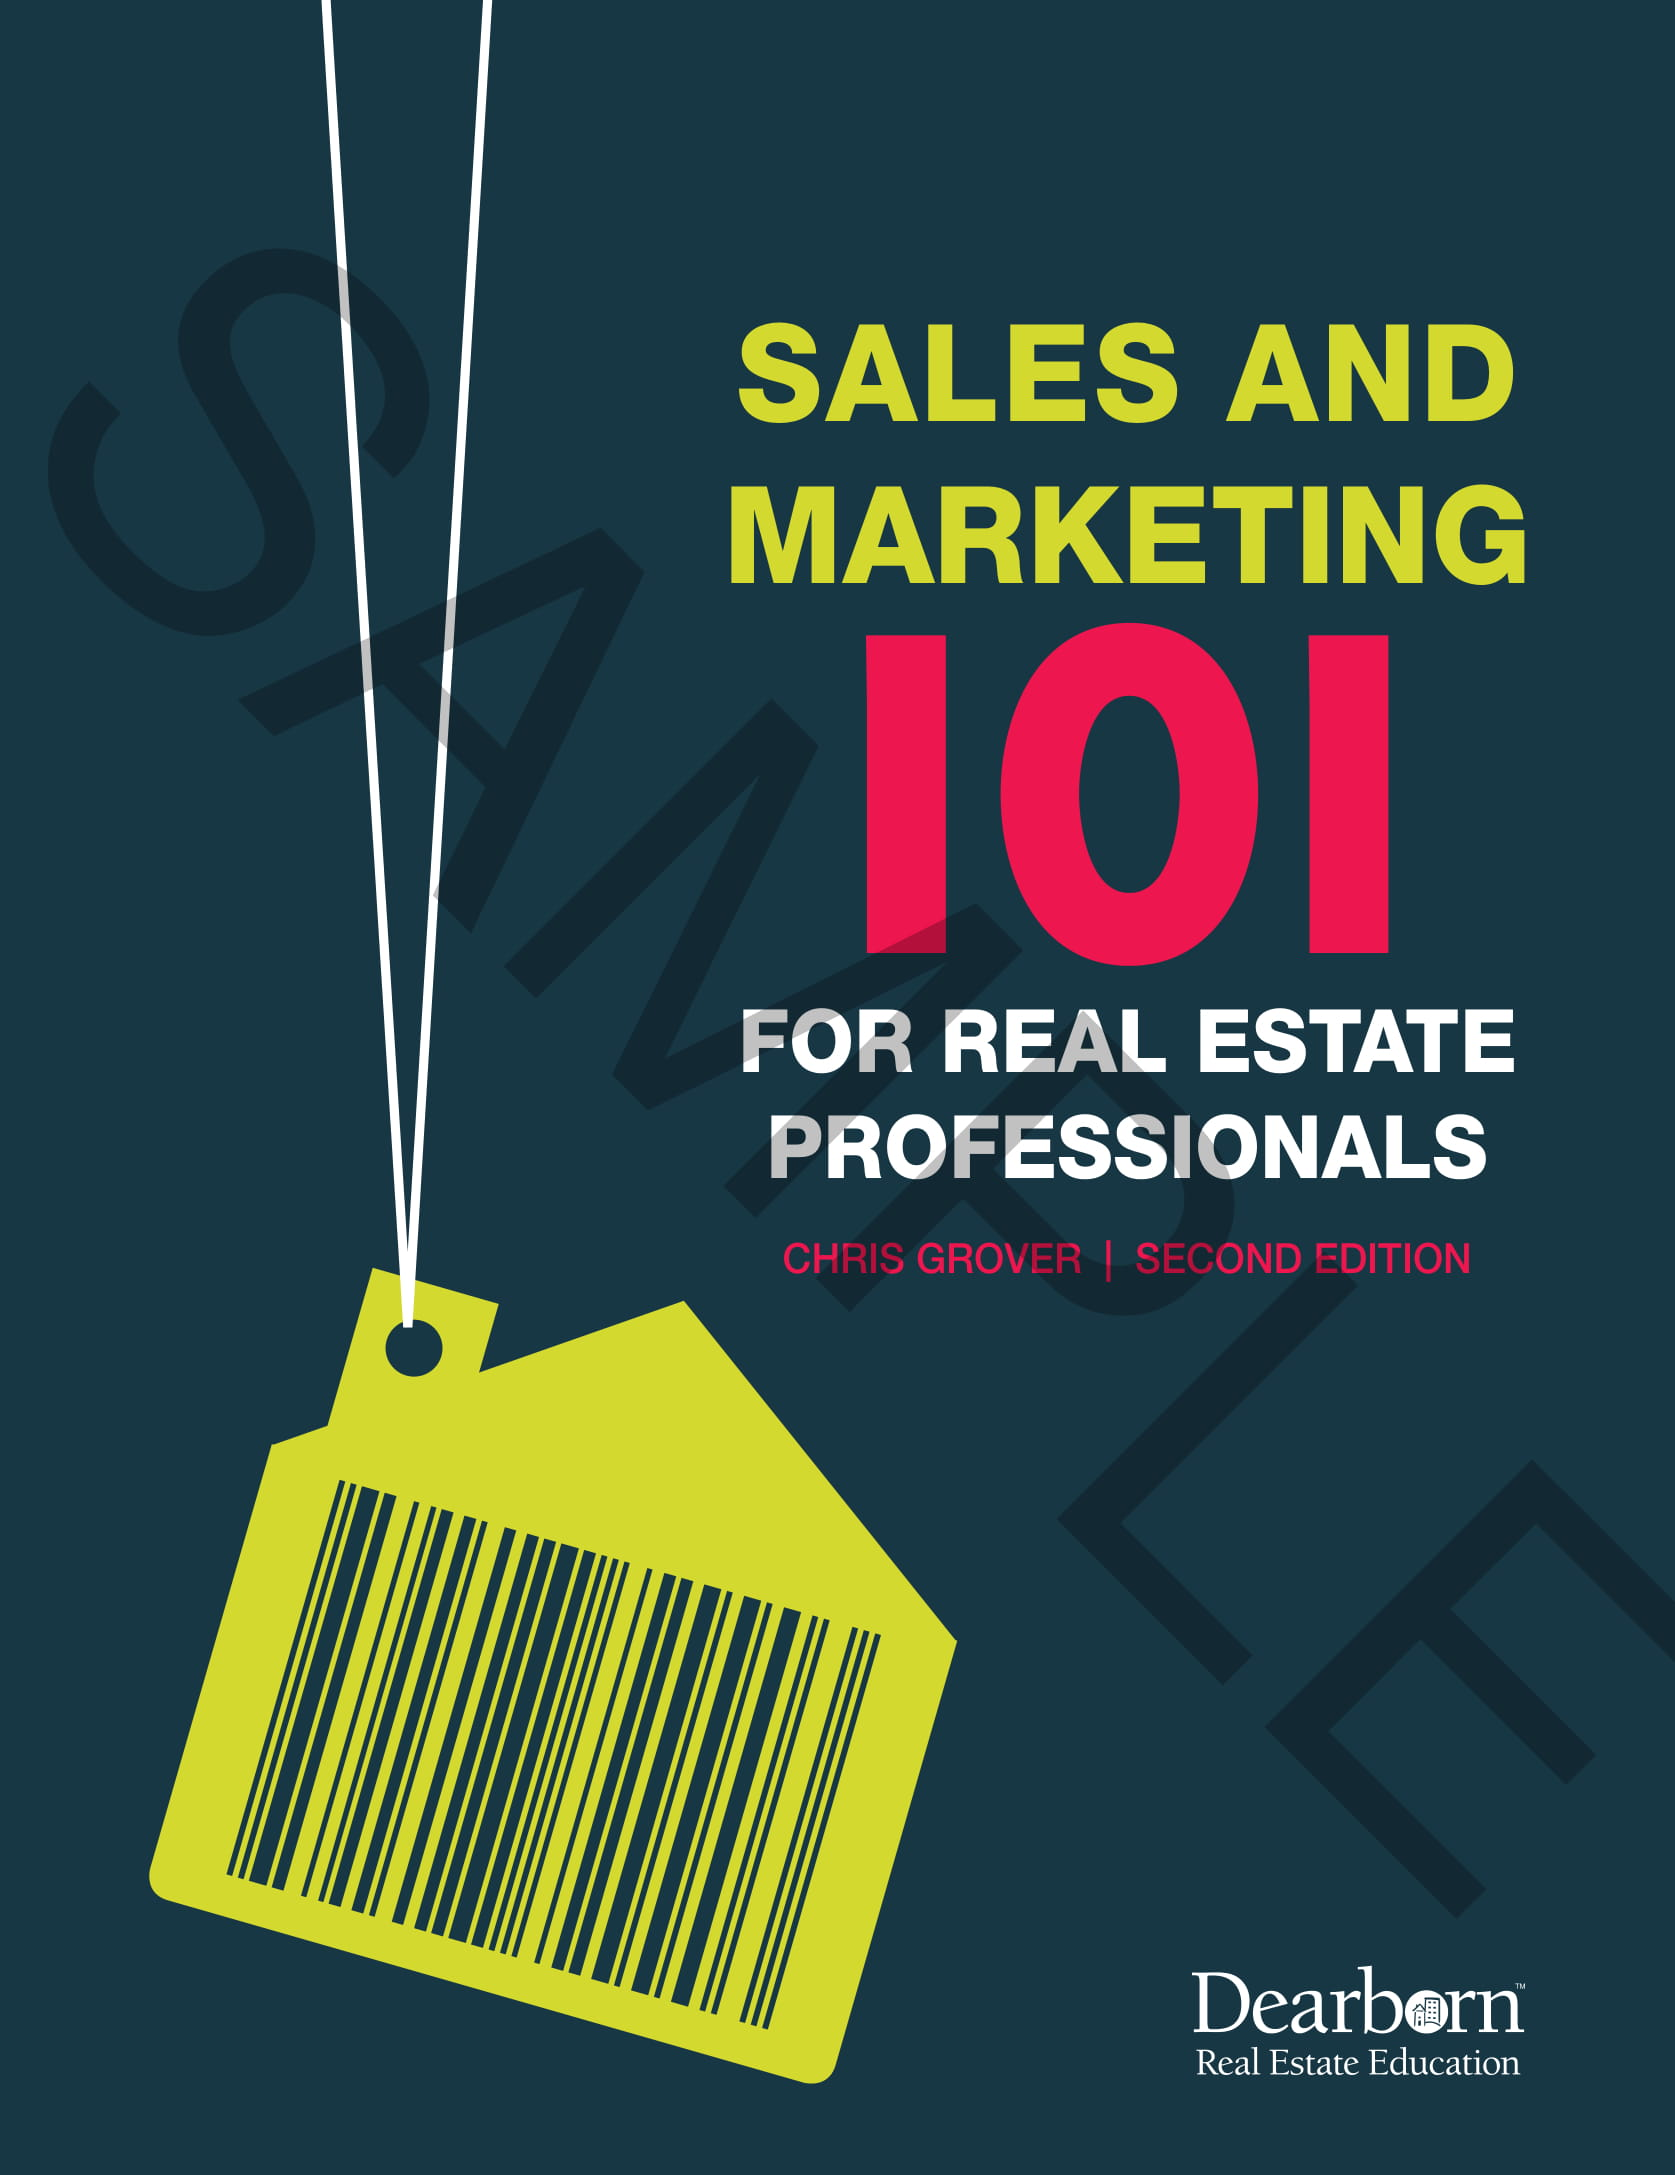 sales and marketing plan for real estate professionals example 01